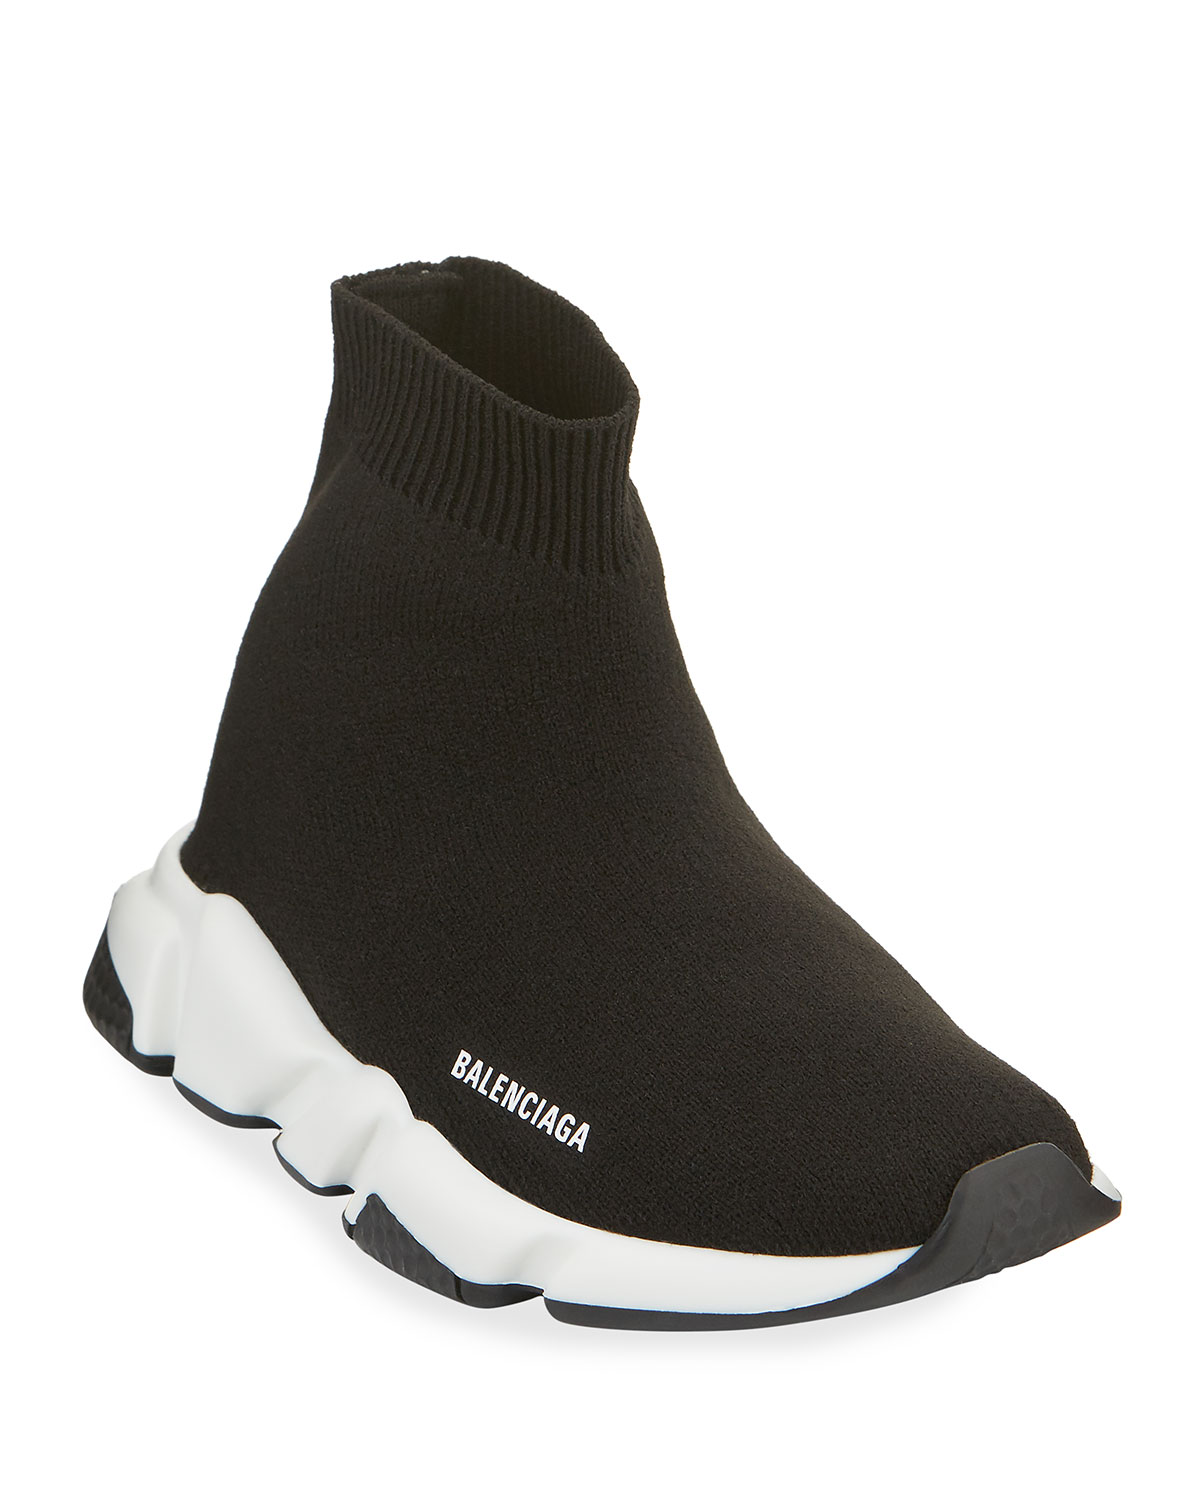 balenciaga sneakers youth - 52% remise